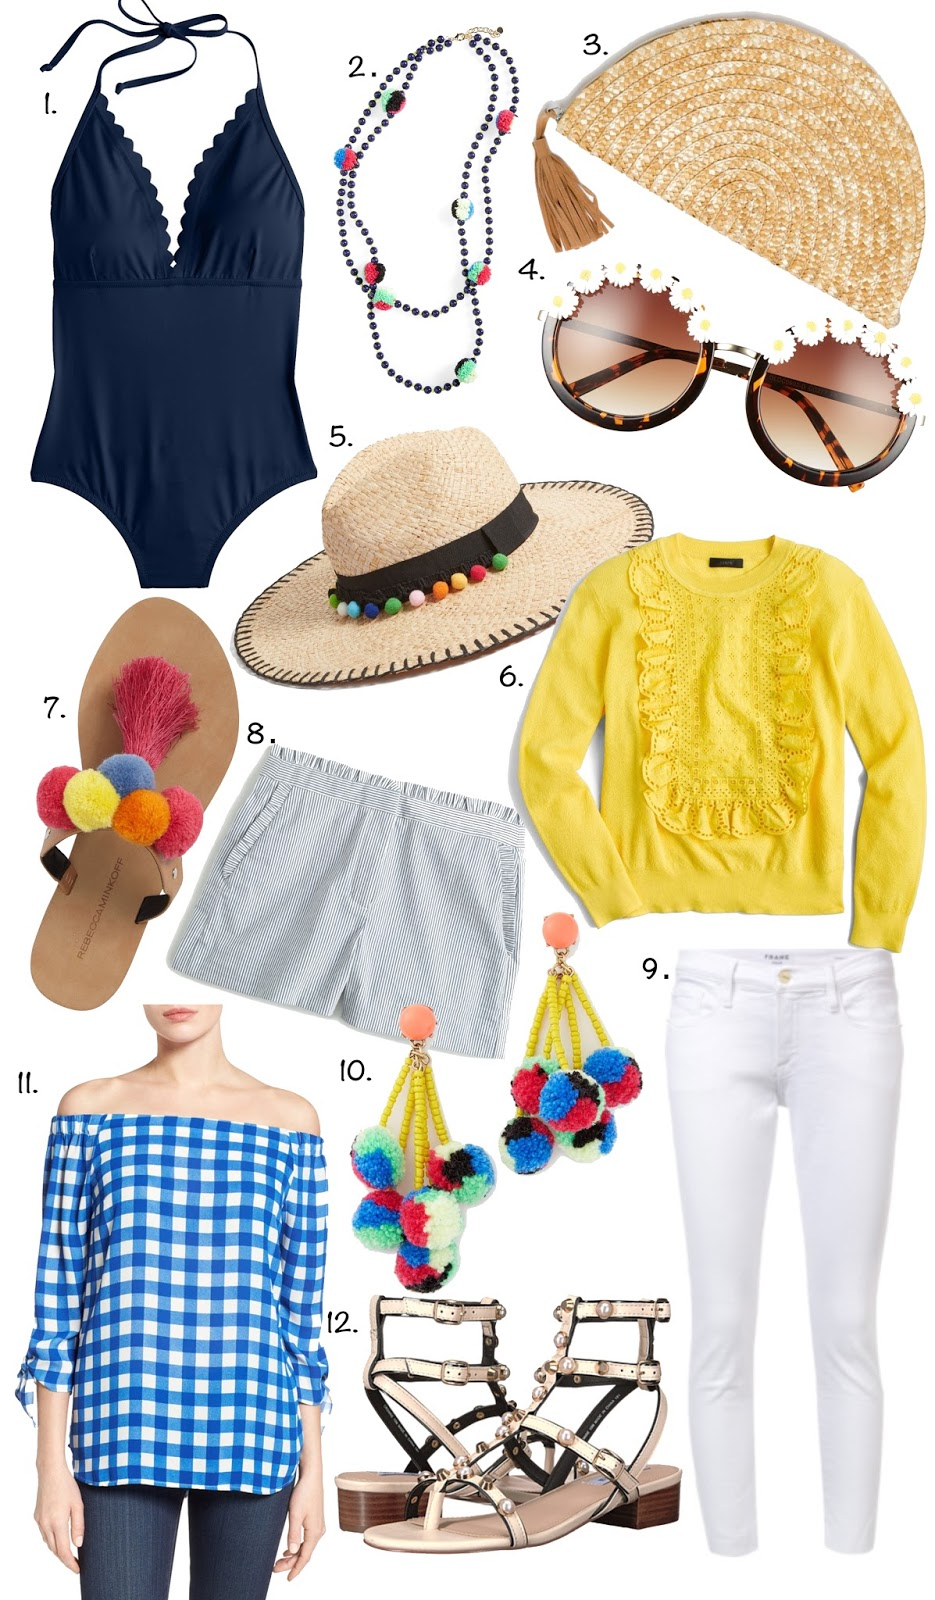 Scalloped Swimsuit, Tassels, Pom-poms and more...click through to find all the details!